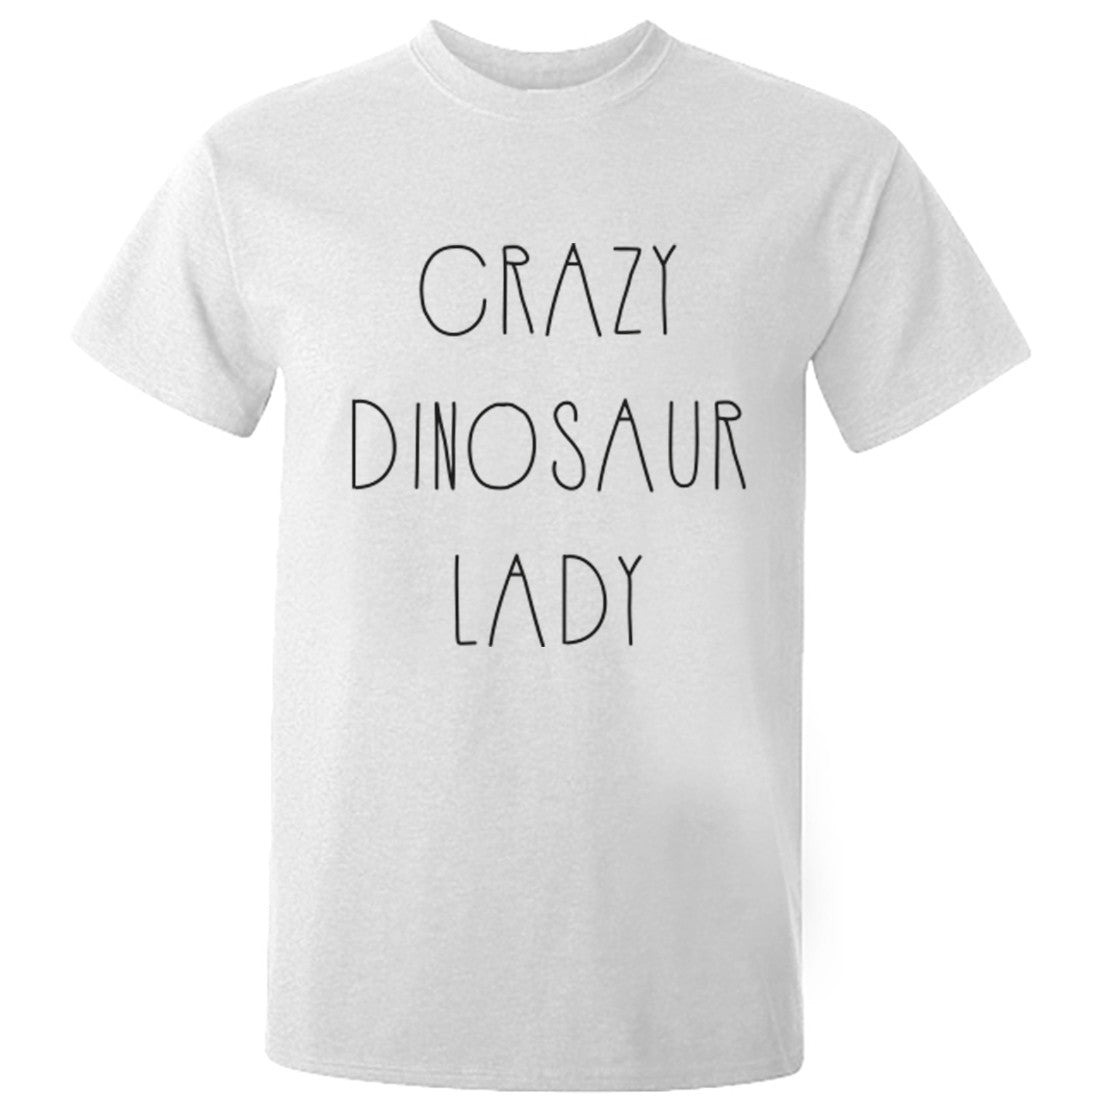 Crazy Dinosaur Lady Unisex Fit T-Shirt K0599 - Illustrated Identity Ltd.